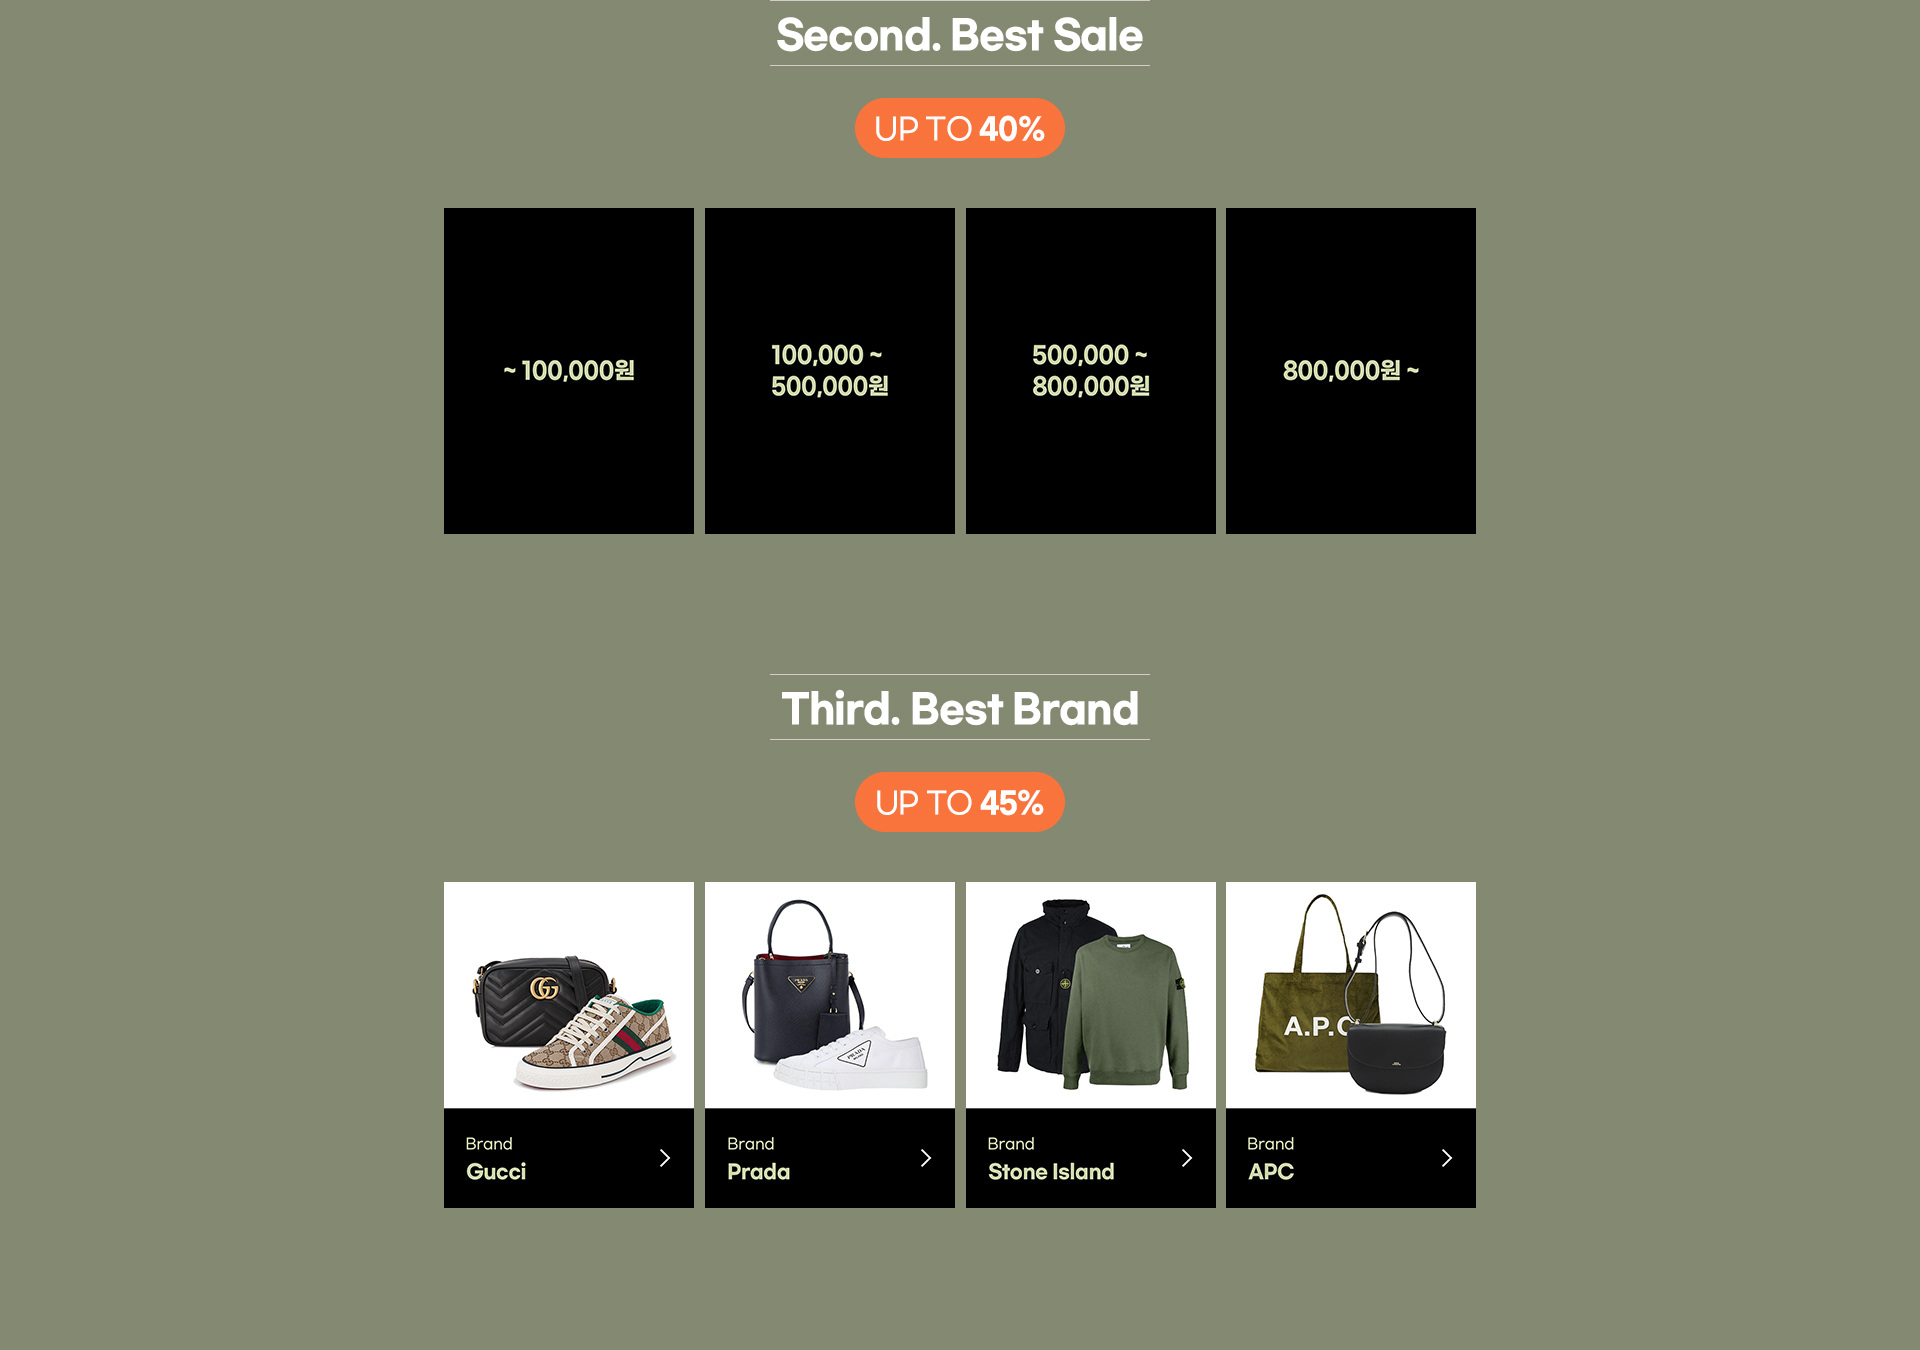 Second. Best Sale UP TO 40%, Third. Best Brand UP TO 45%